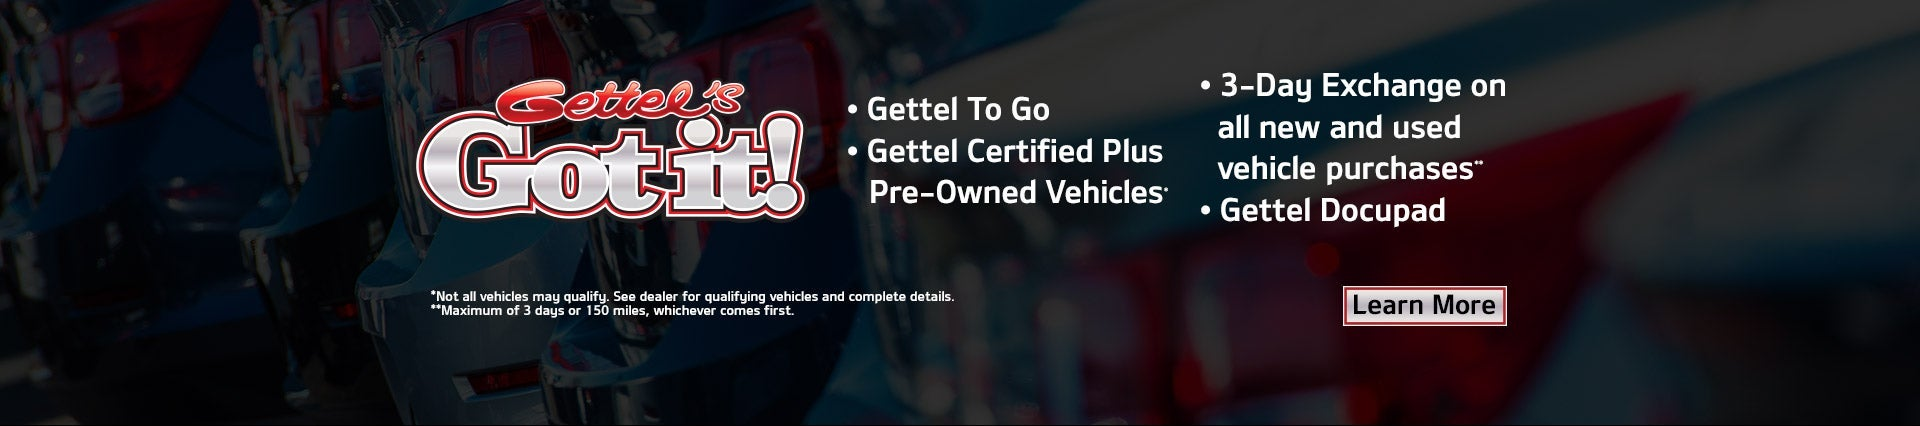 22+ Gettel Automotive Punta Gorda